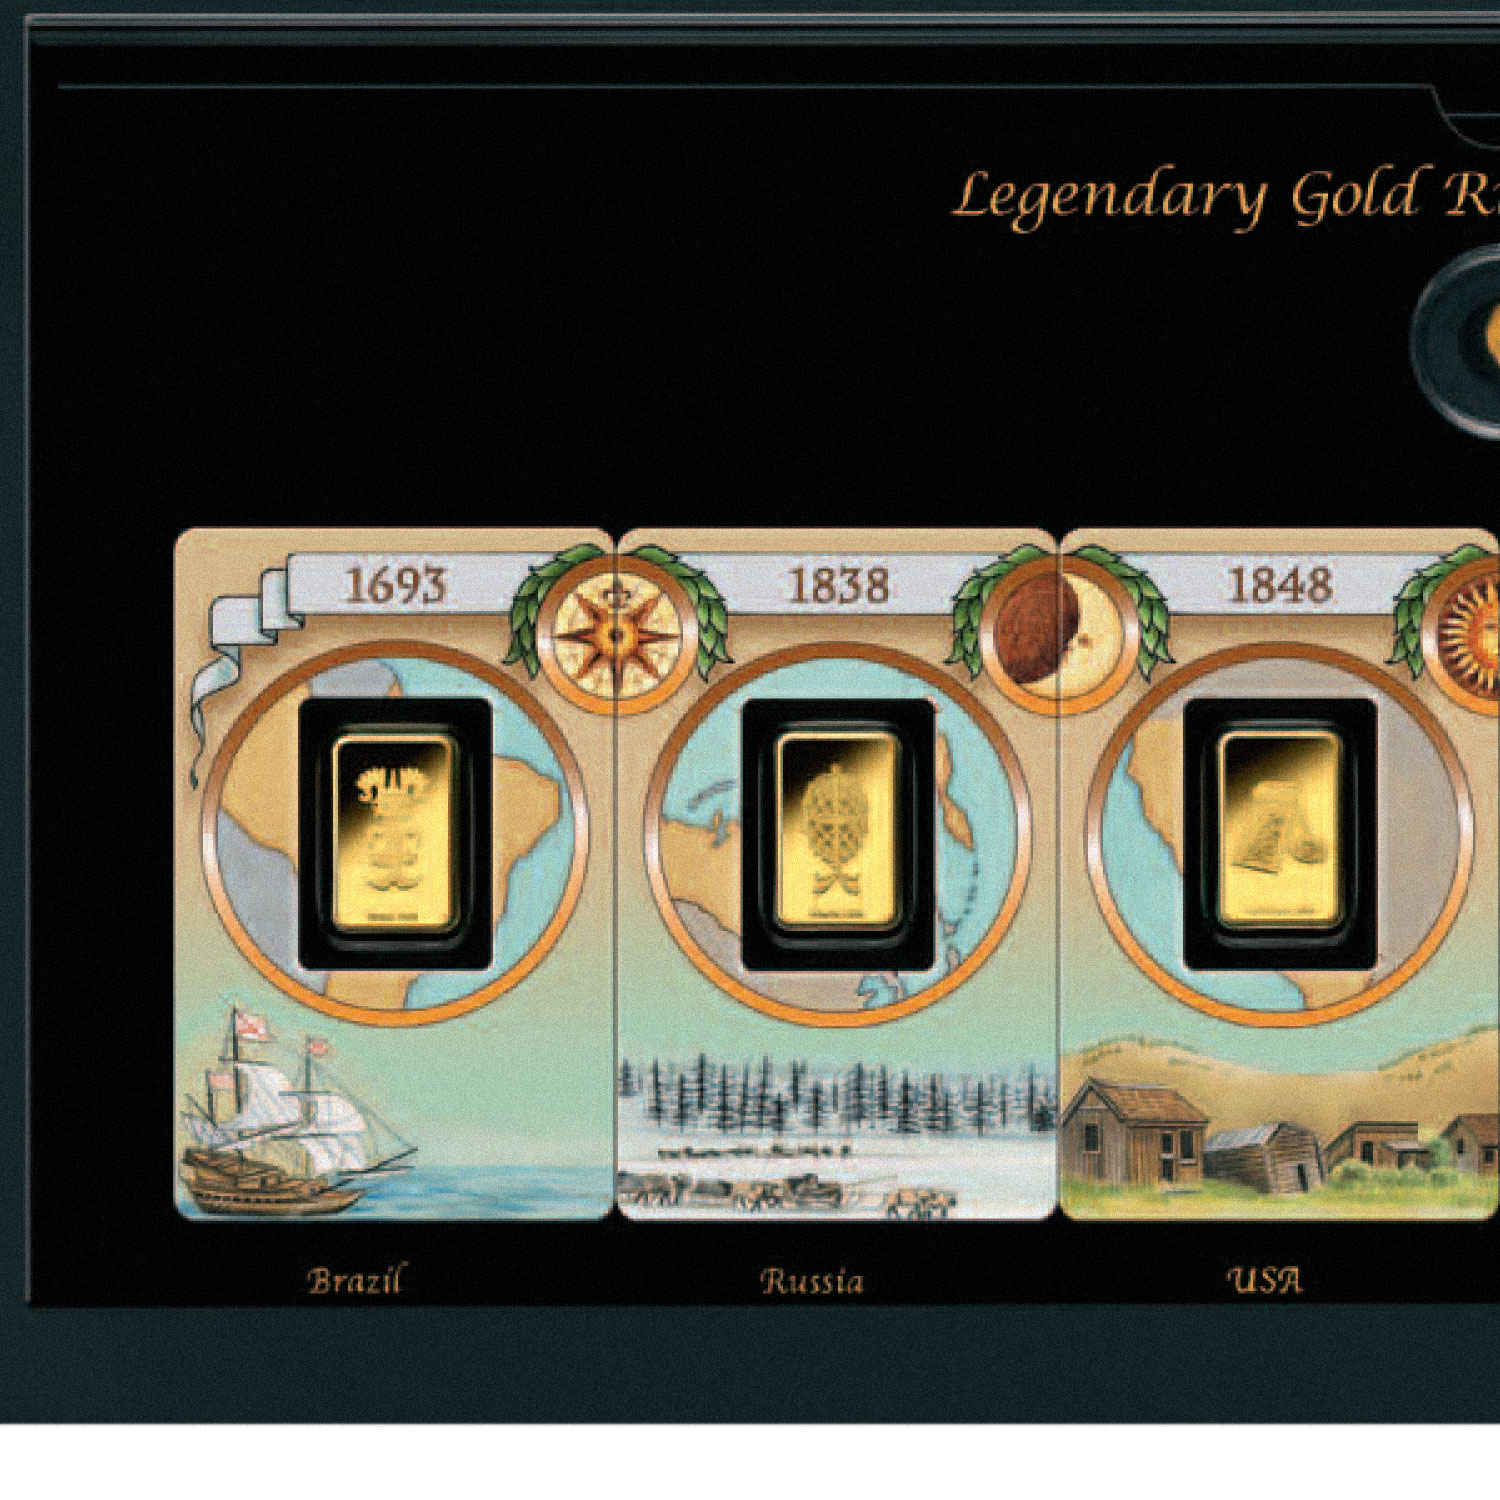 Legendary Gold Rushes of the World - Six .9999 Gold Bar Set